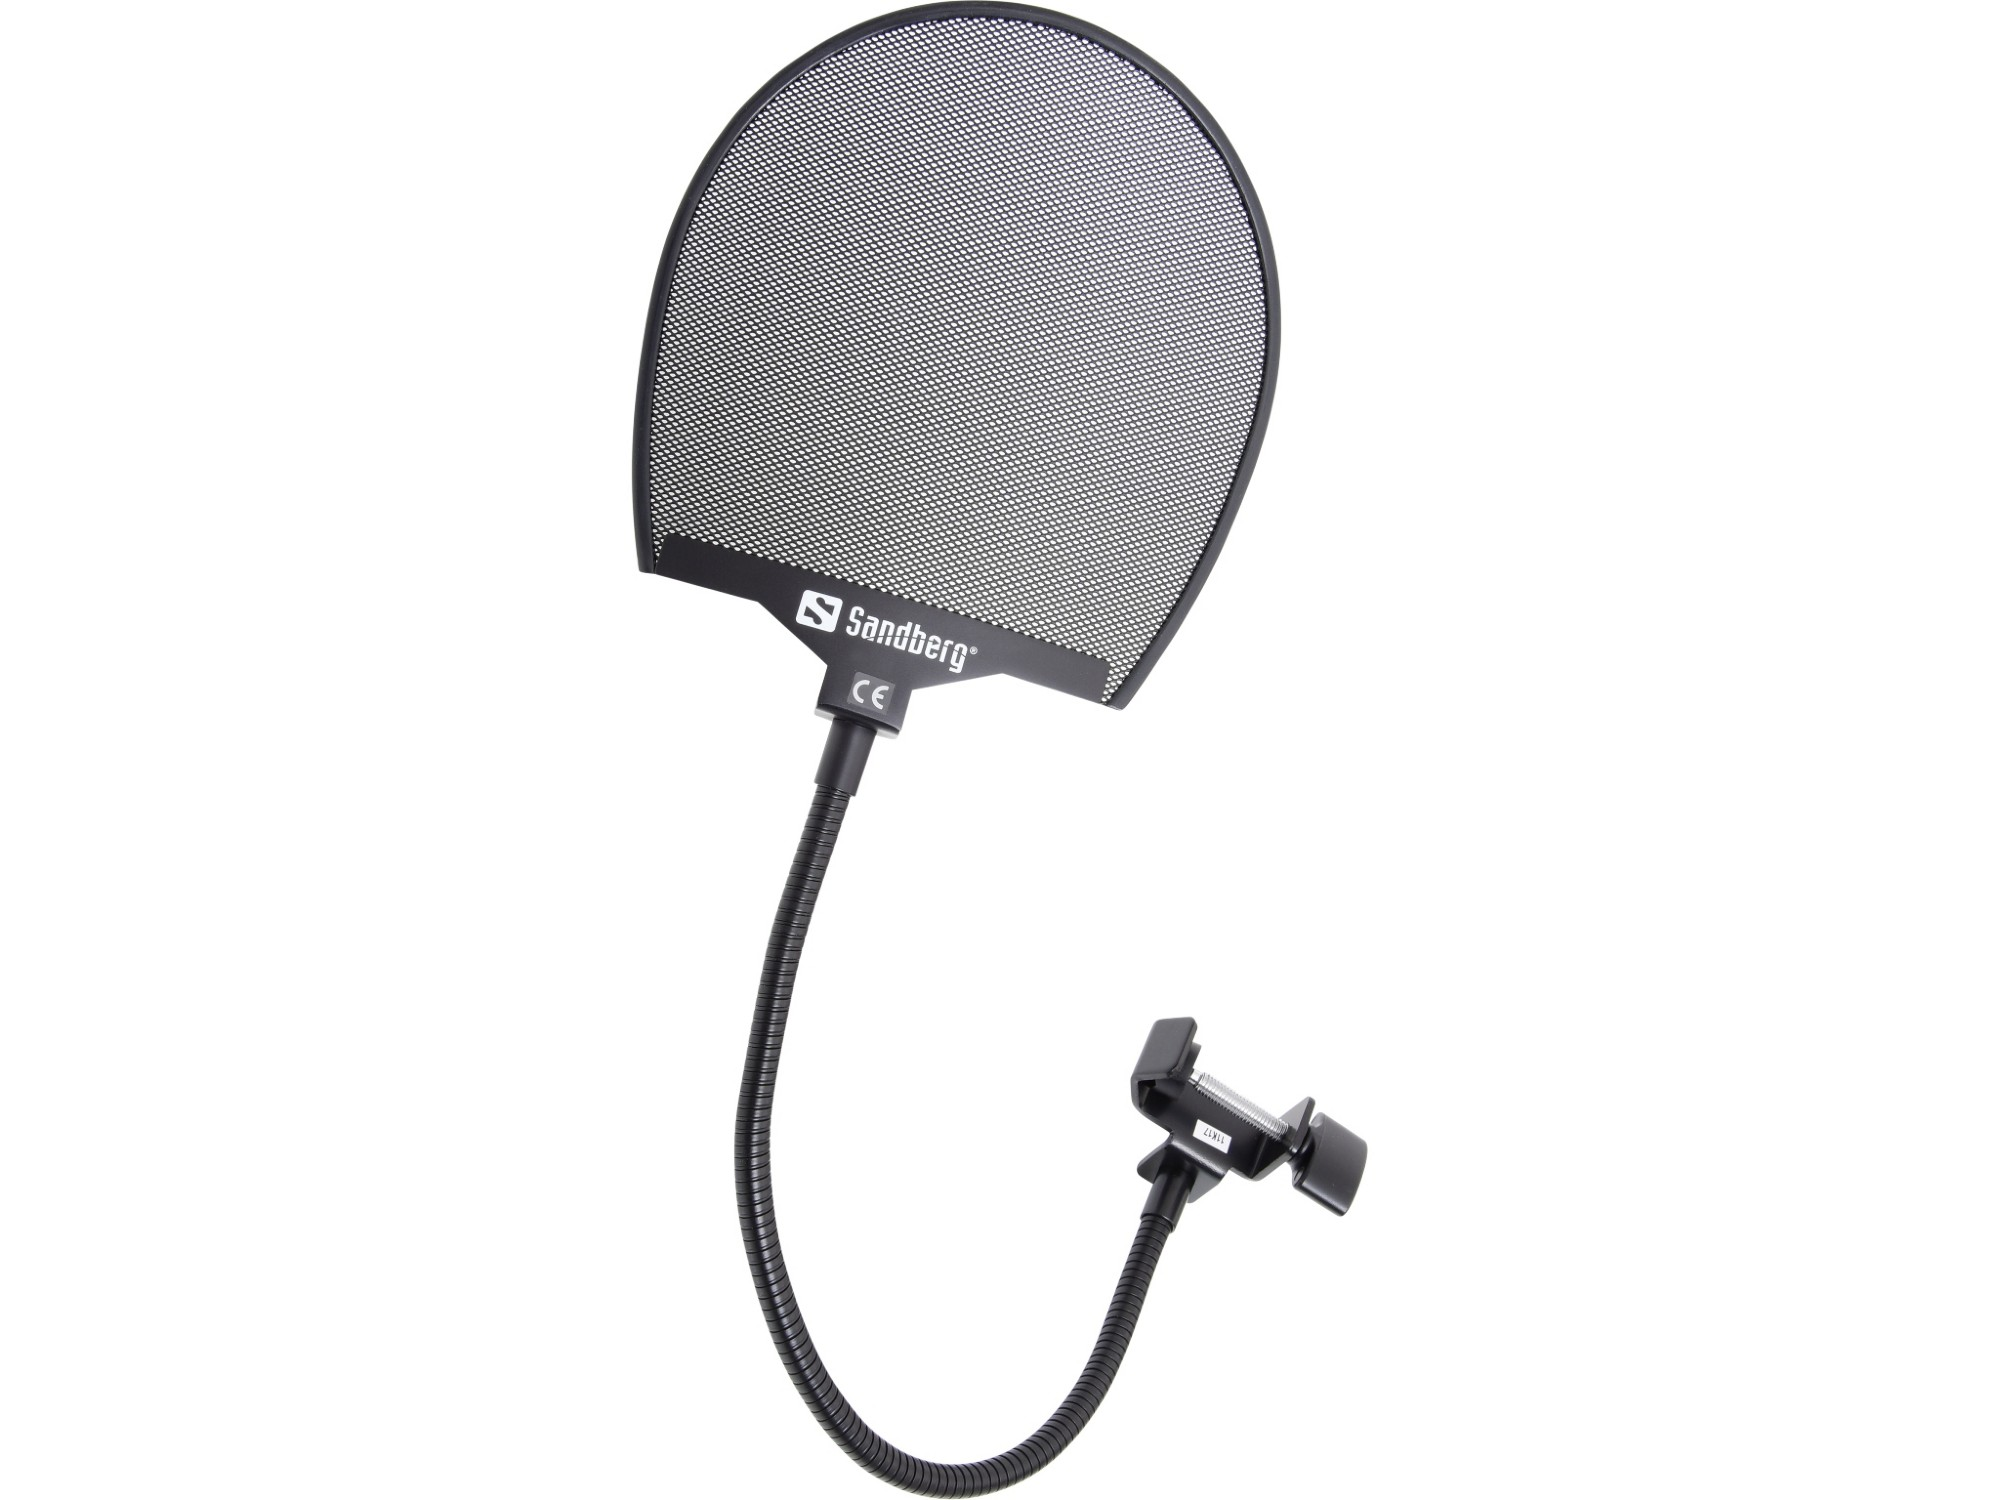 SANDBERG 126-04 POPFILTER FOR MICROPHONE